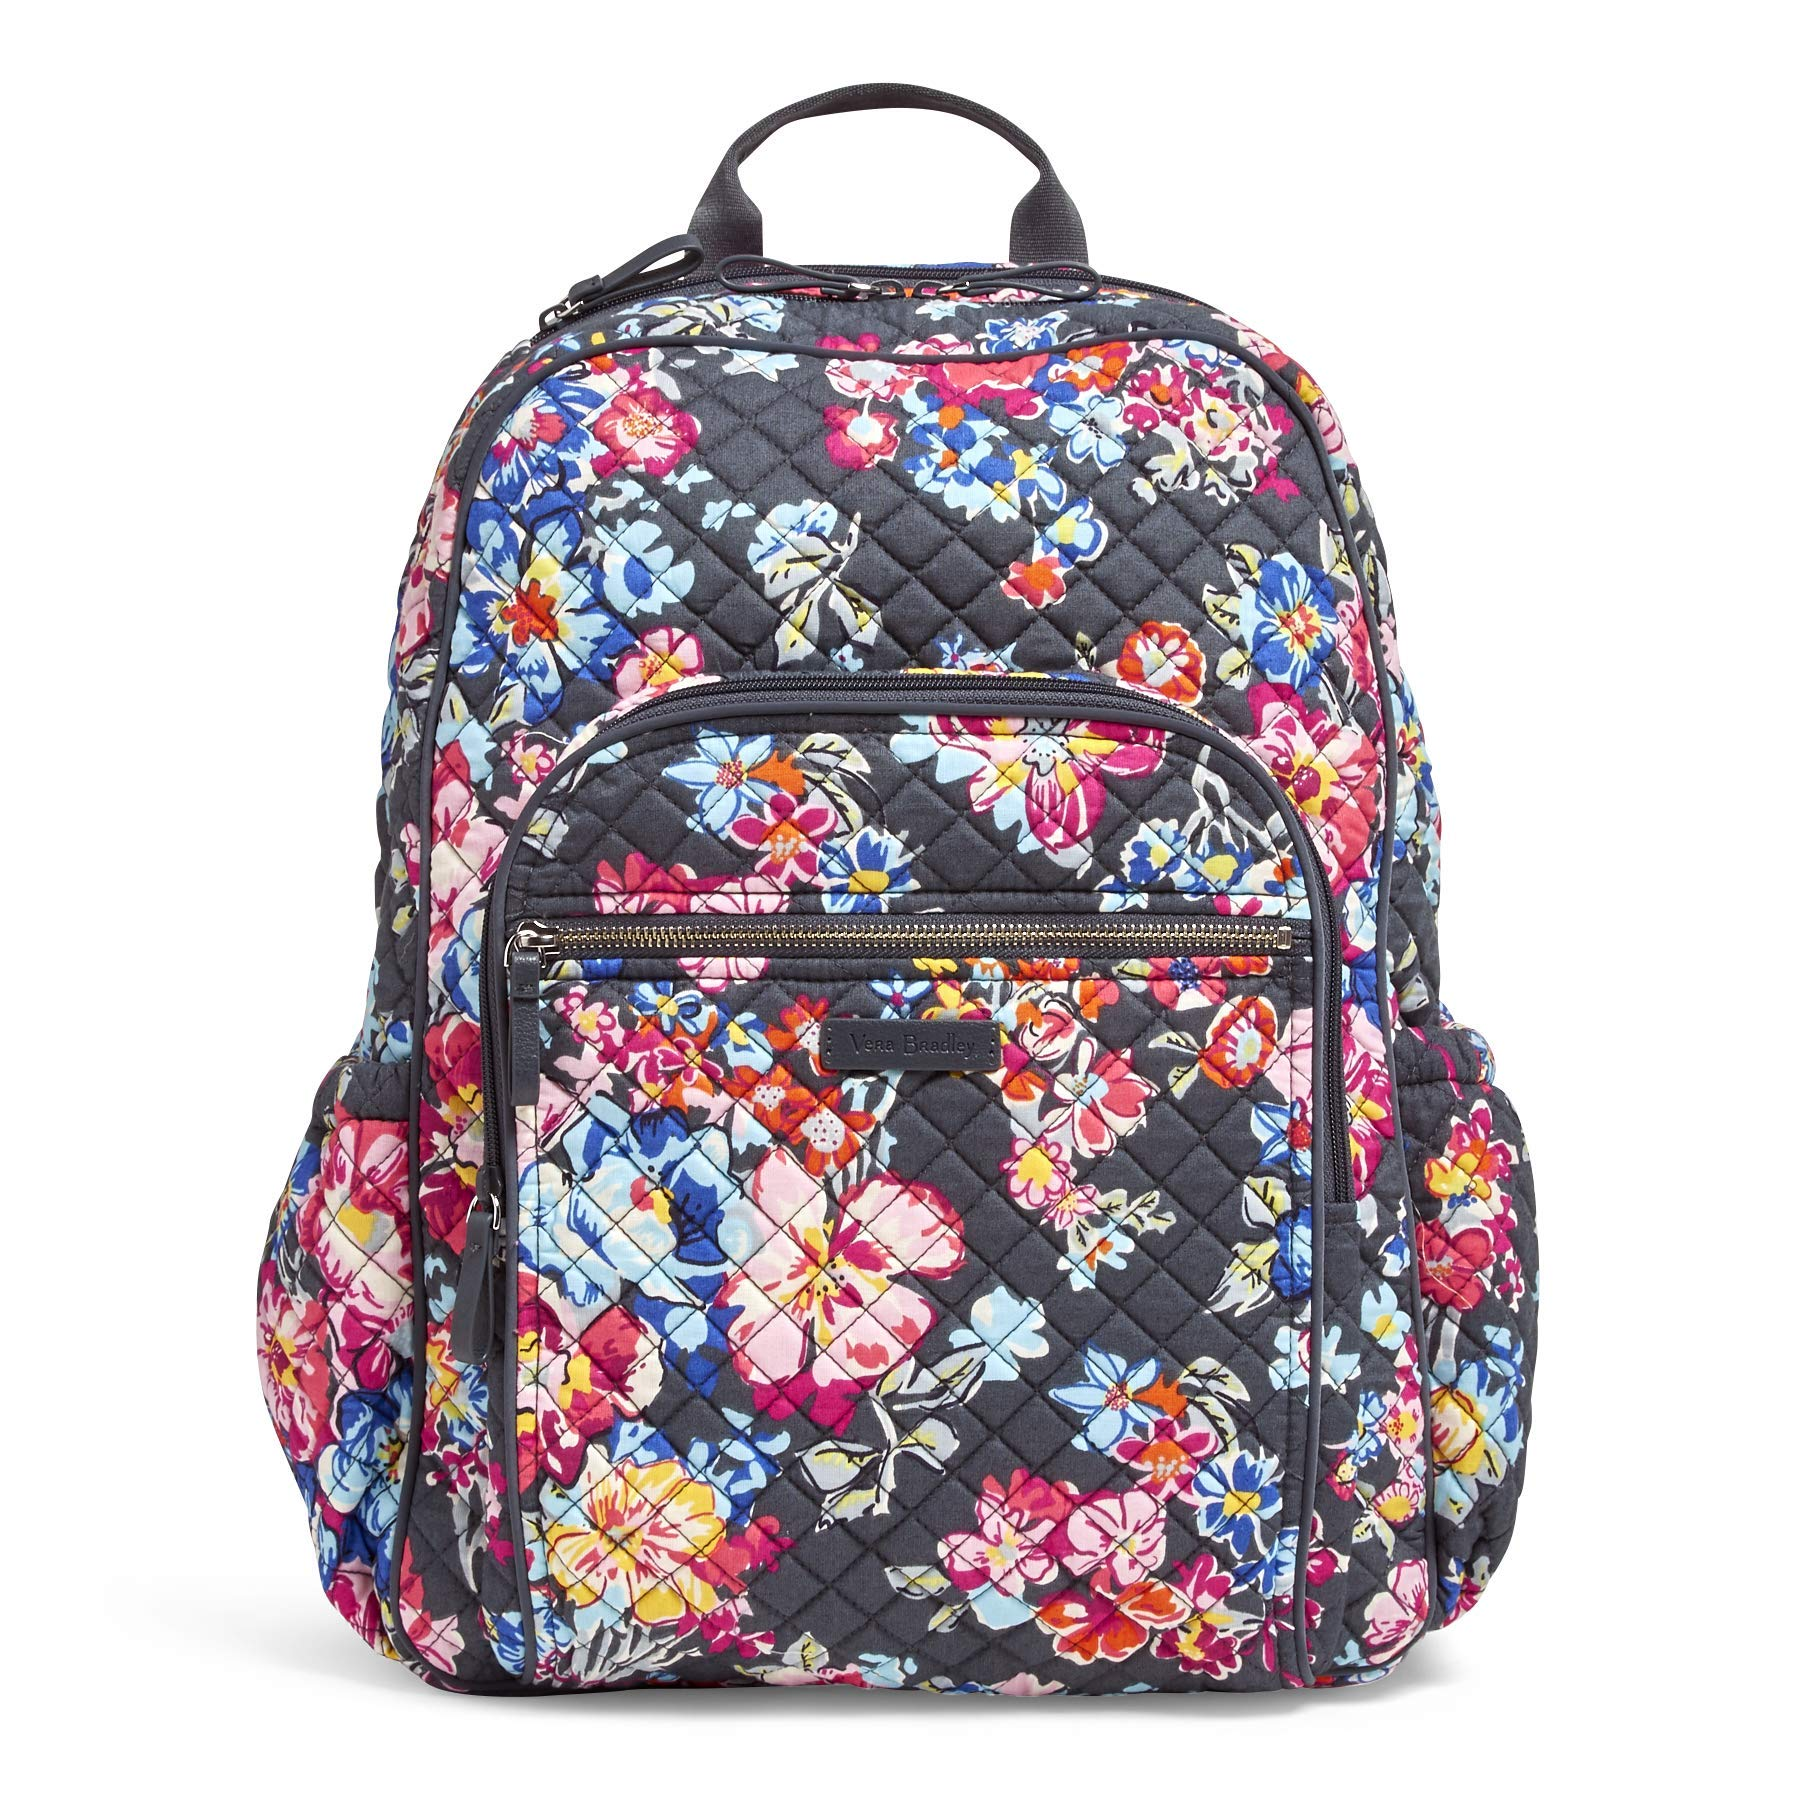 Vera Bradley Iconic Campus Backpack, Signature Cotton, Pretty Posies